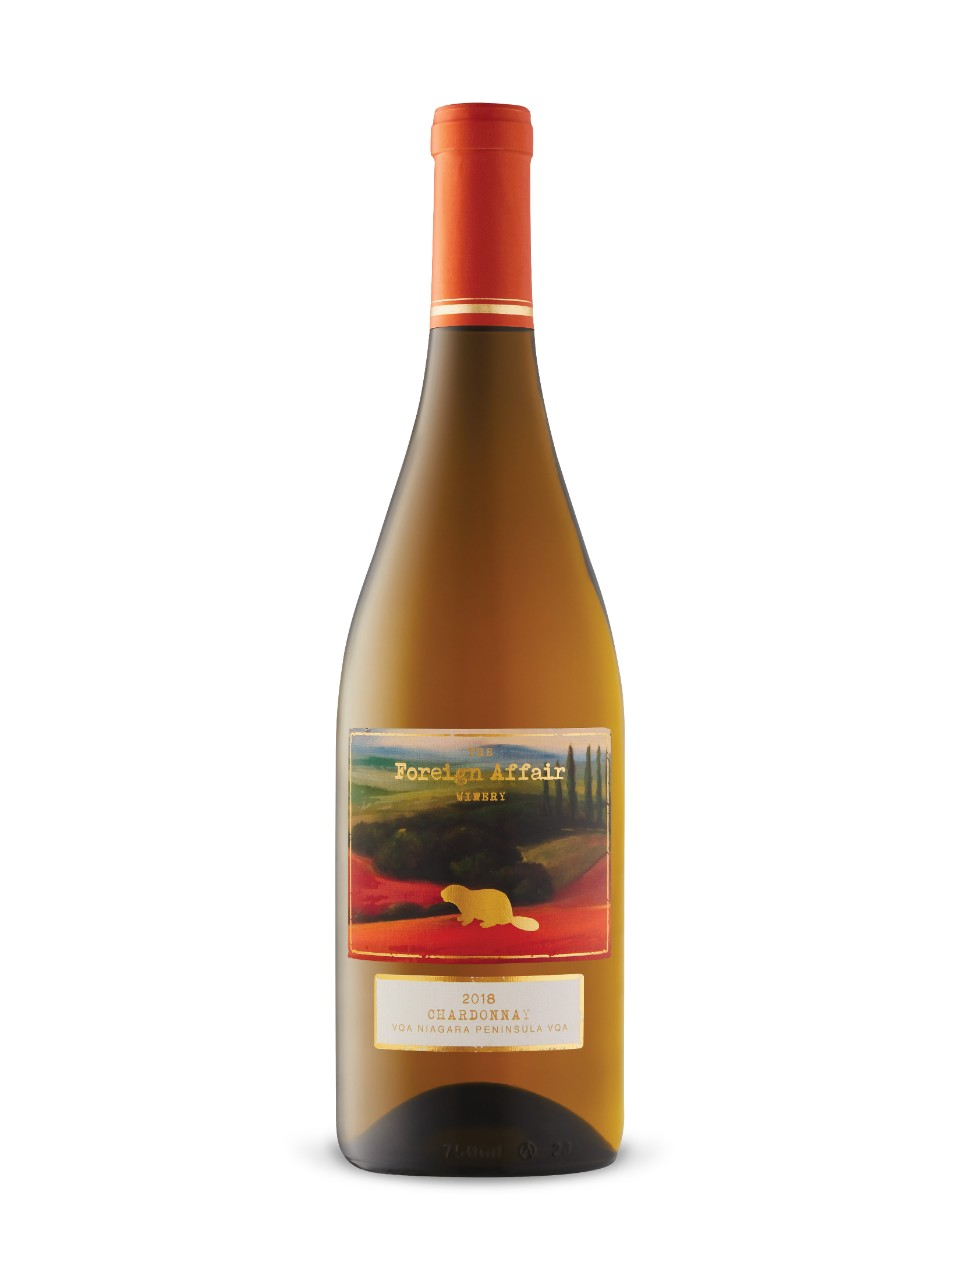 The Foreign Affair Chardonnay 2018 from LCBO